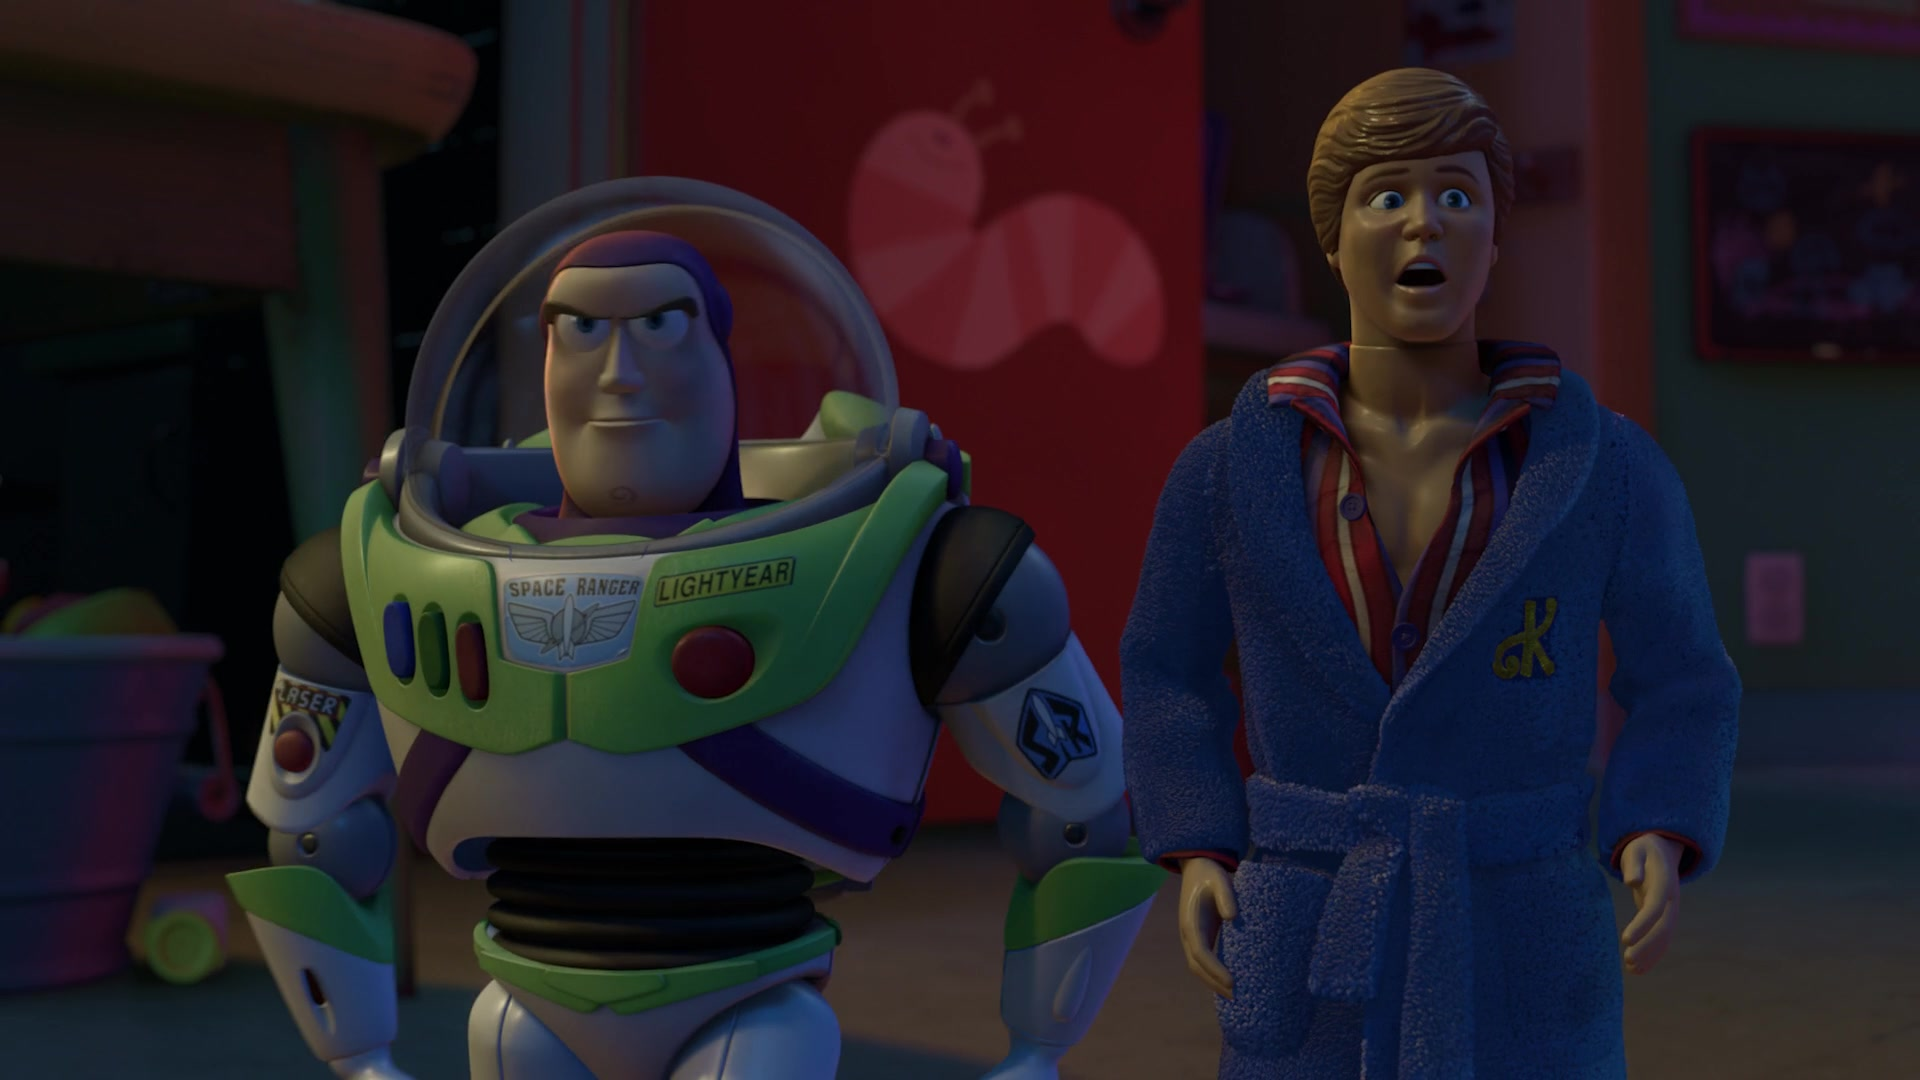 Ken Doll In Toy Story 3 2010 Animation Movie